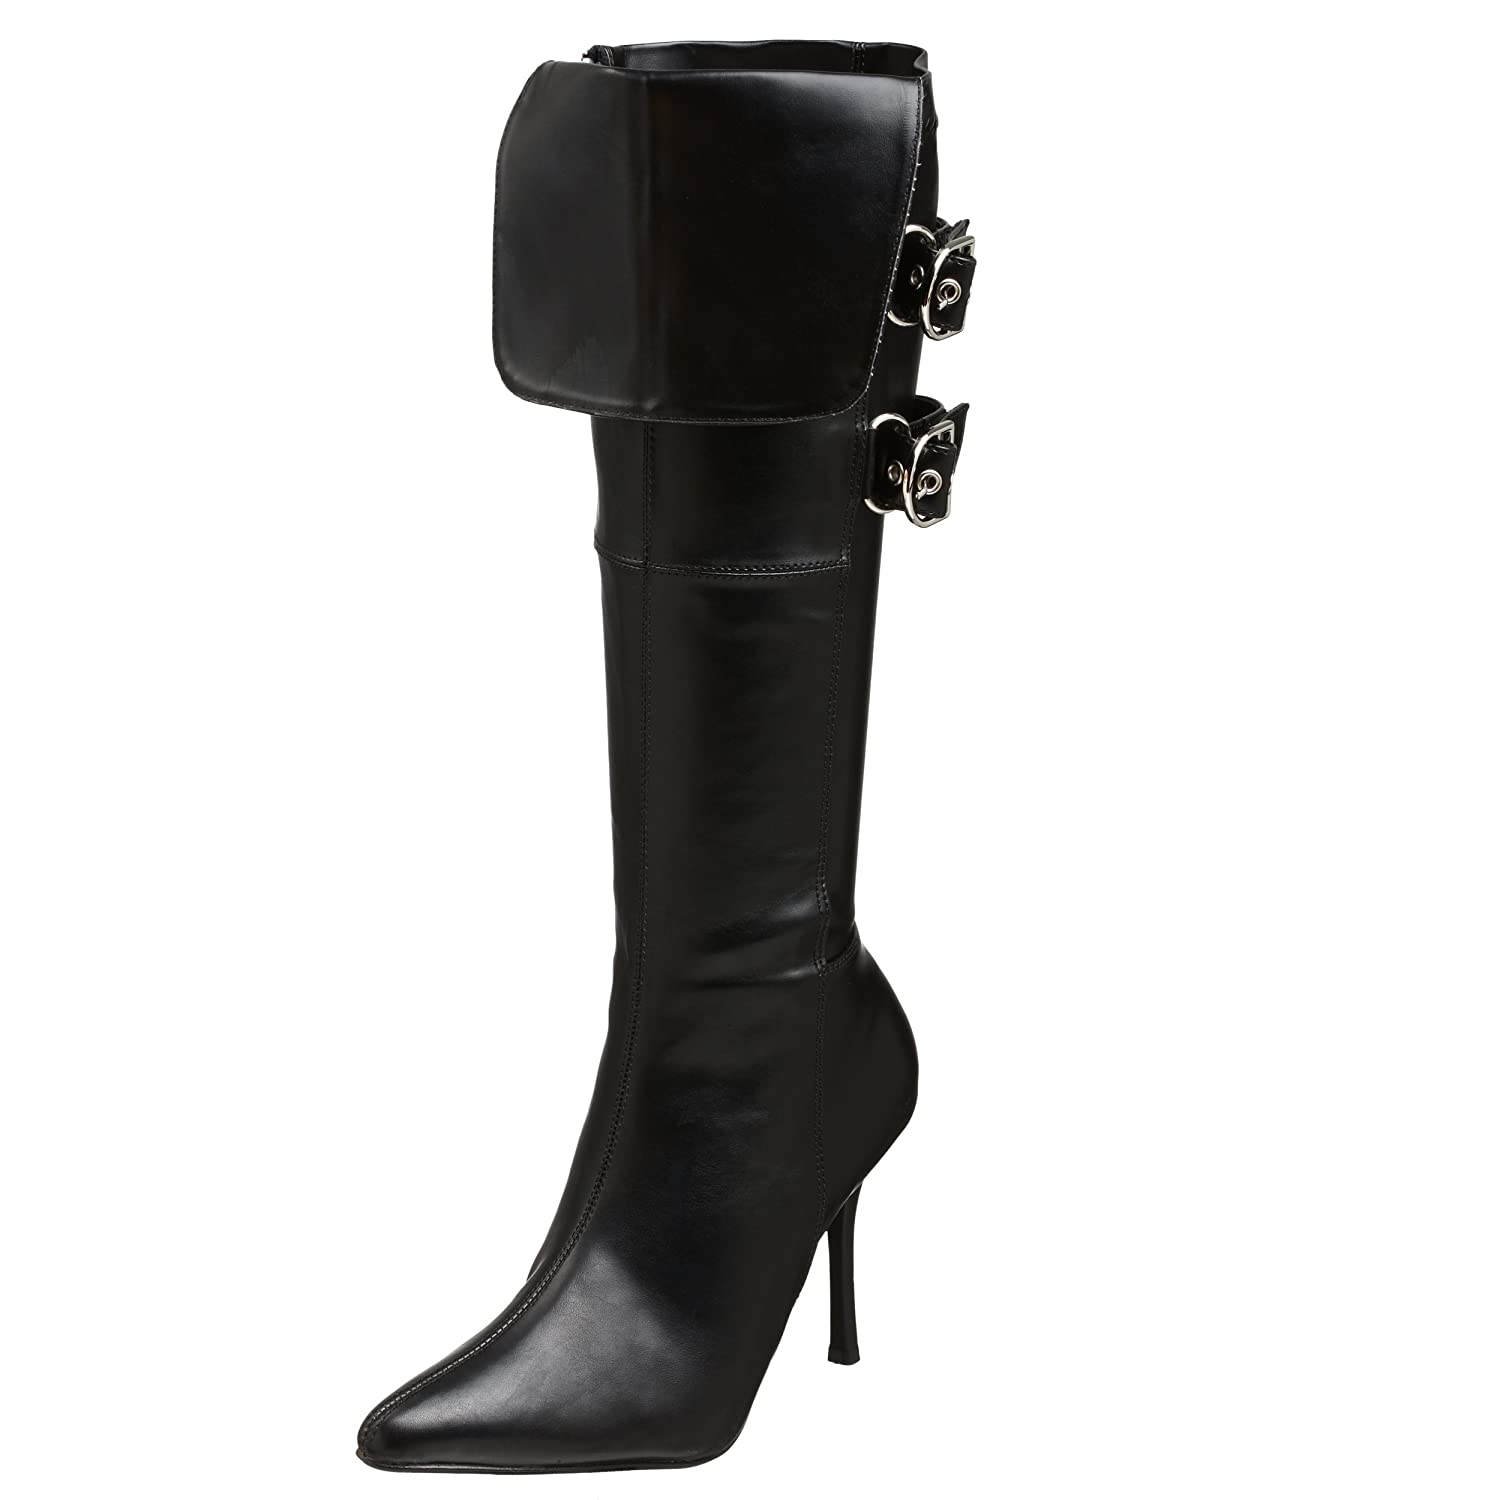 Women's Sexy Black Buckle Cuff Pirate Boots - DeluxeAdultCostumes.com